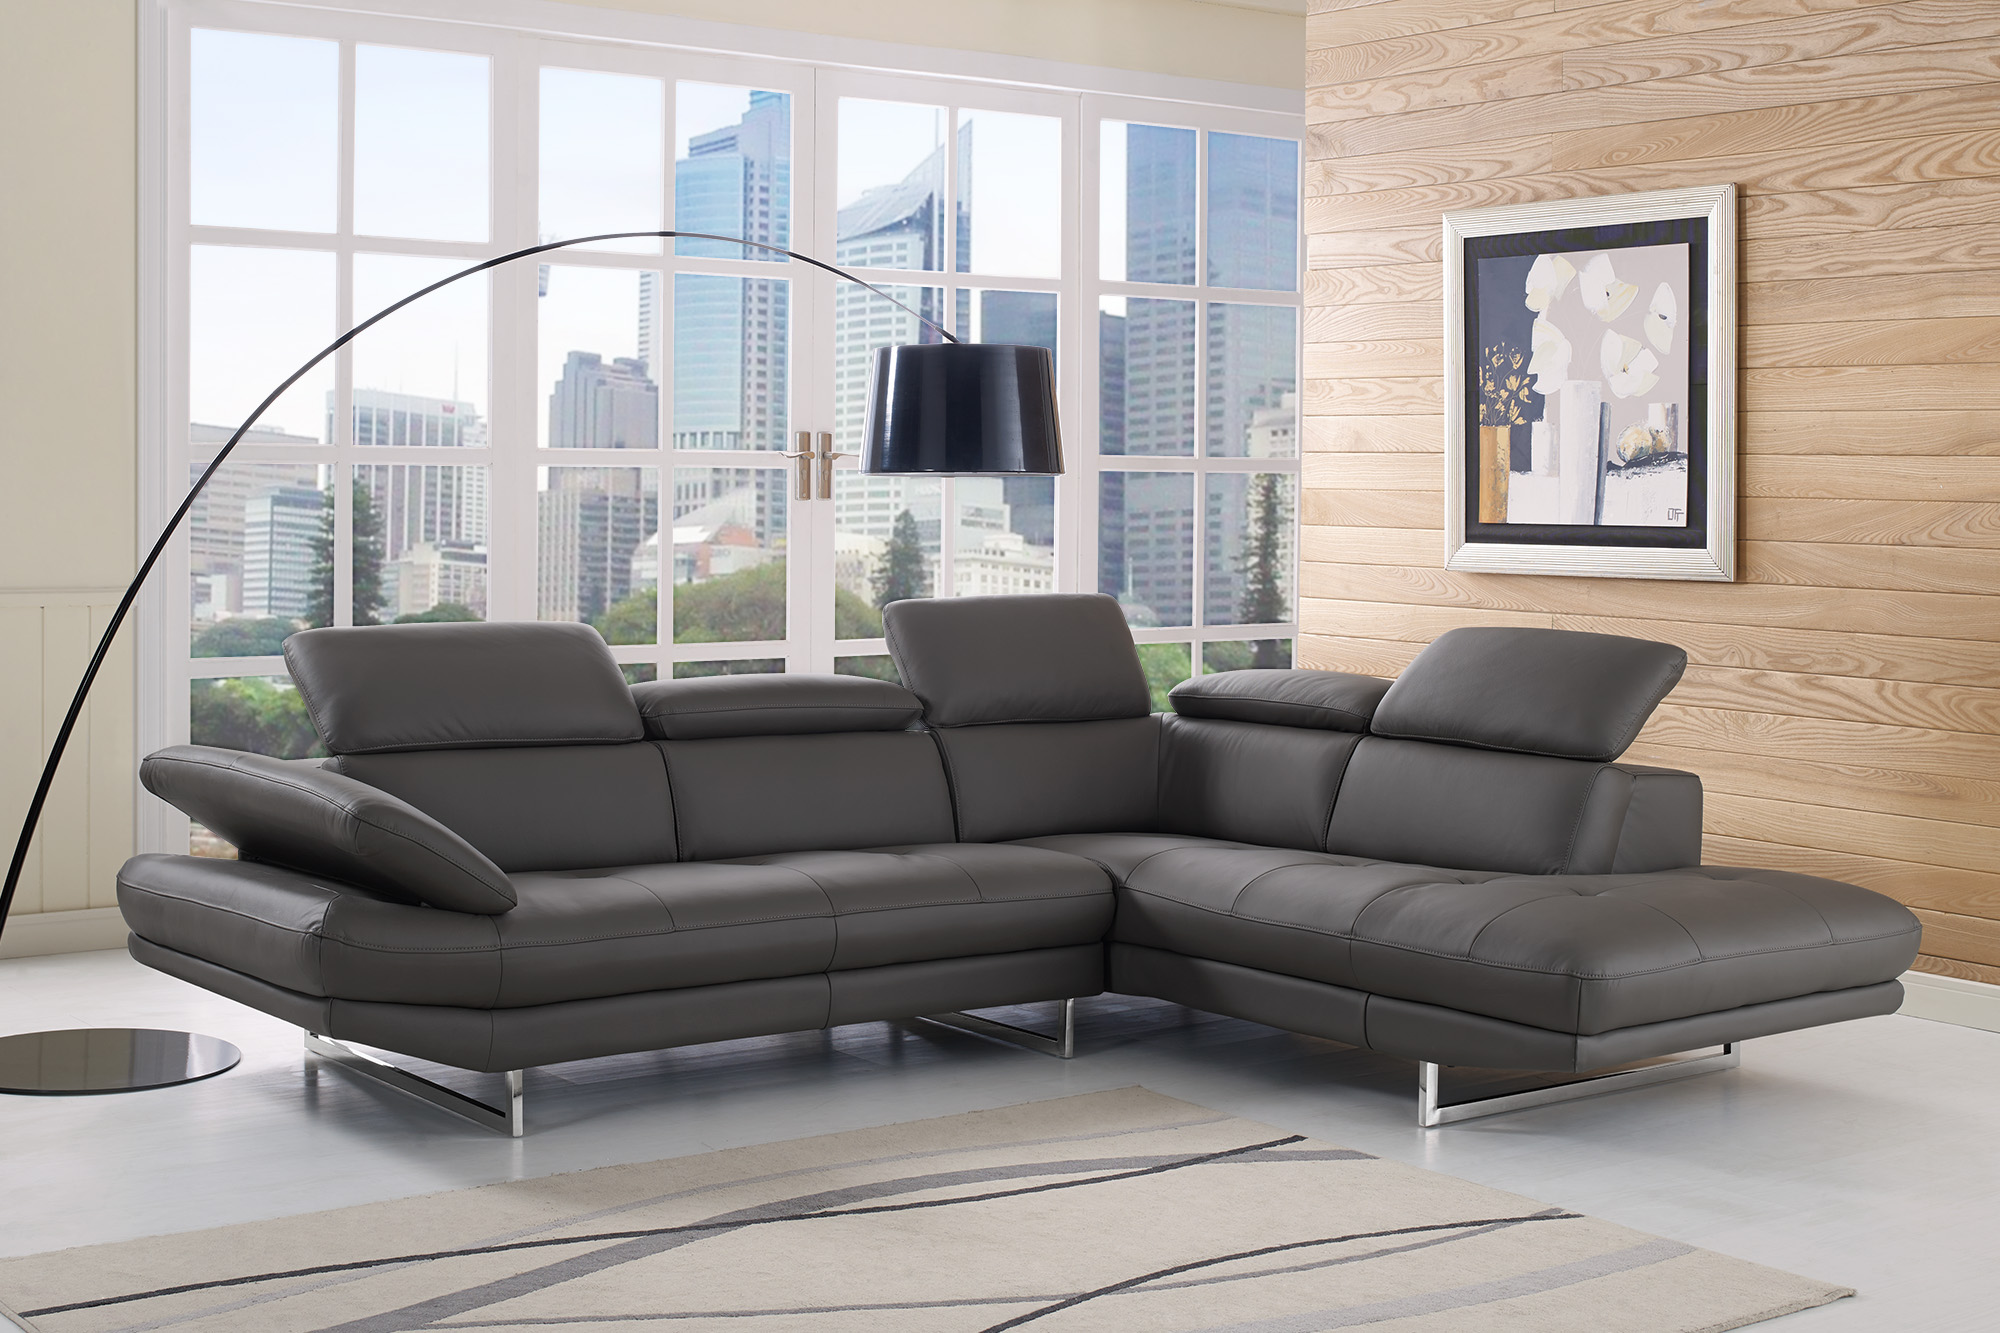 Sectional Corner Couch Adjustable Advanced Italian Leather Corner Couch